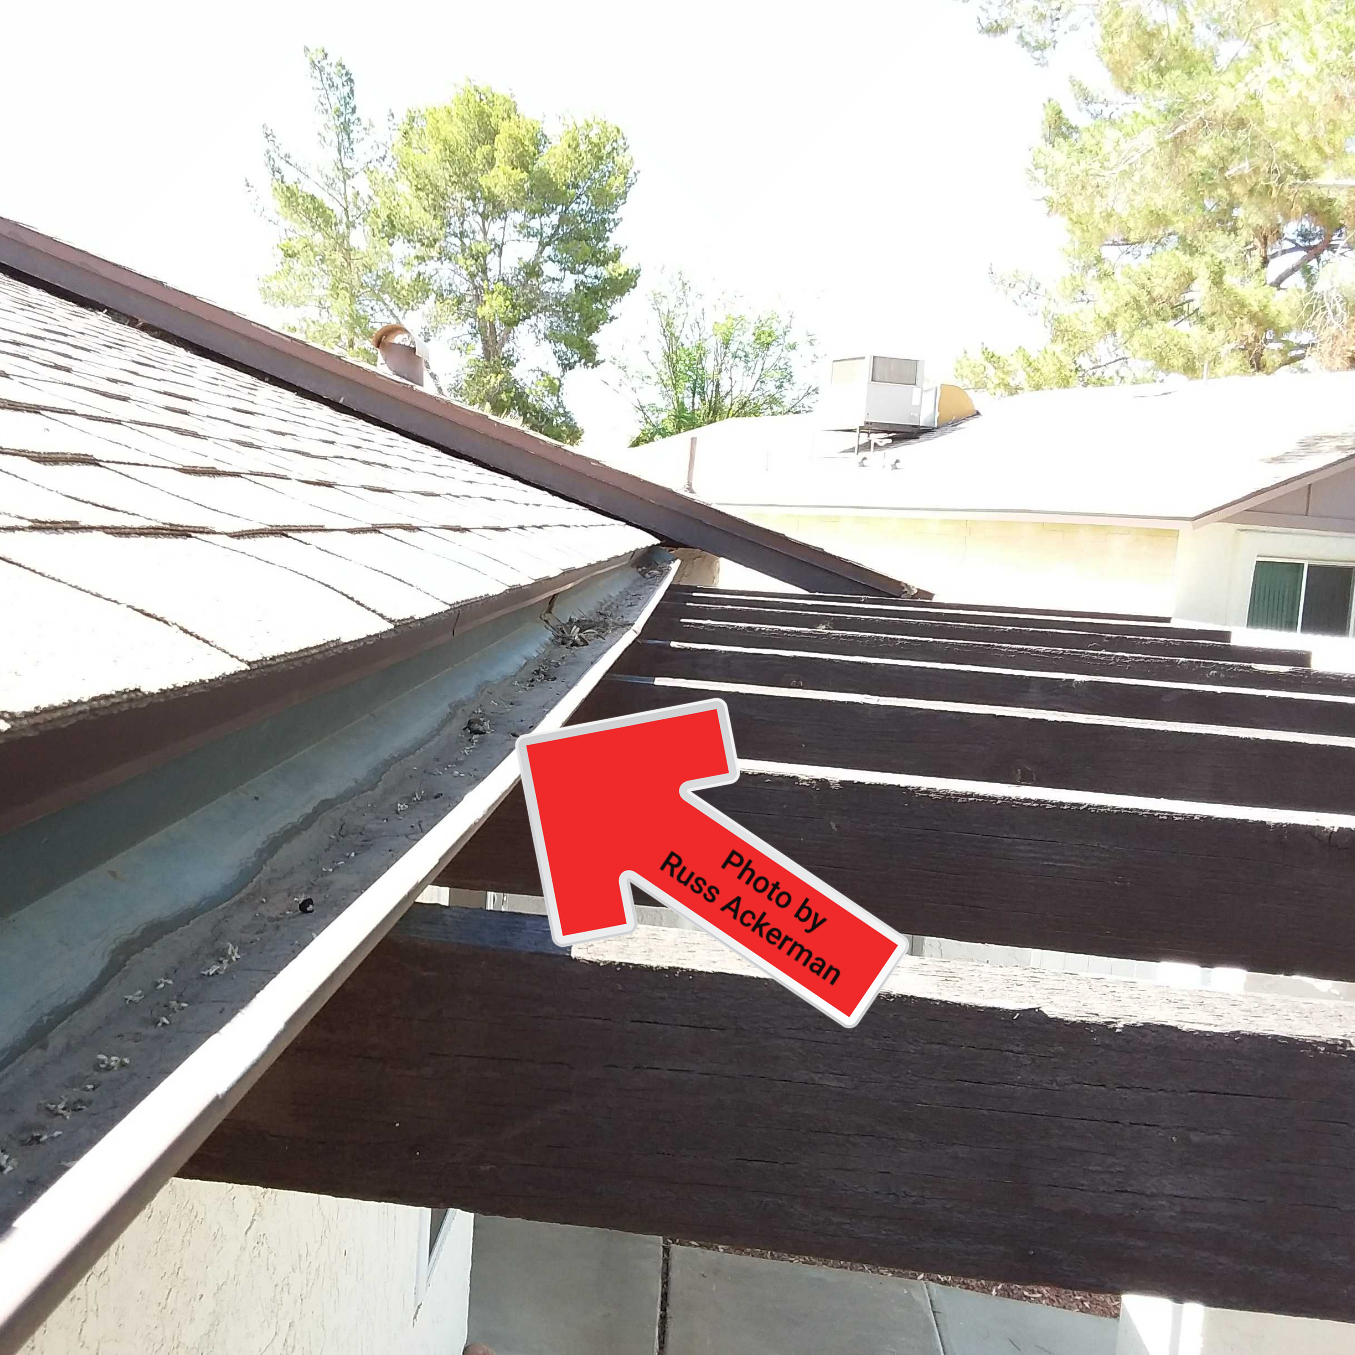 Gutters are rare here in Arizona. Most gutters are installed incorrectly/poorly and are missing downspouts and supports.